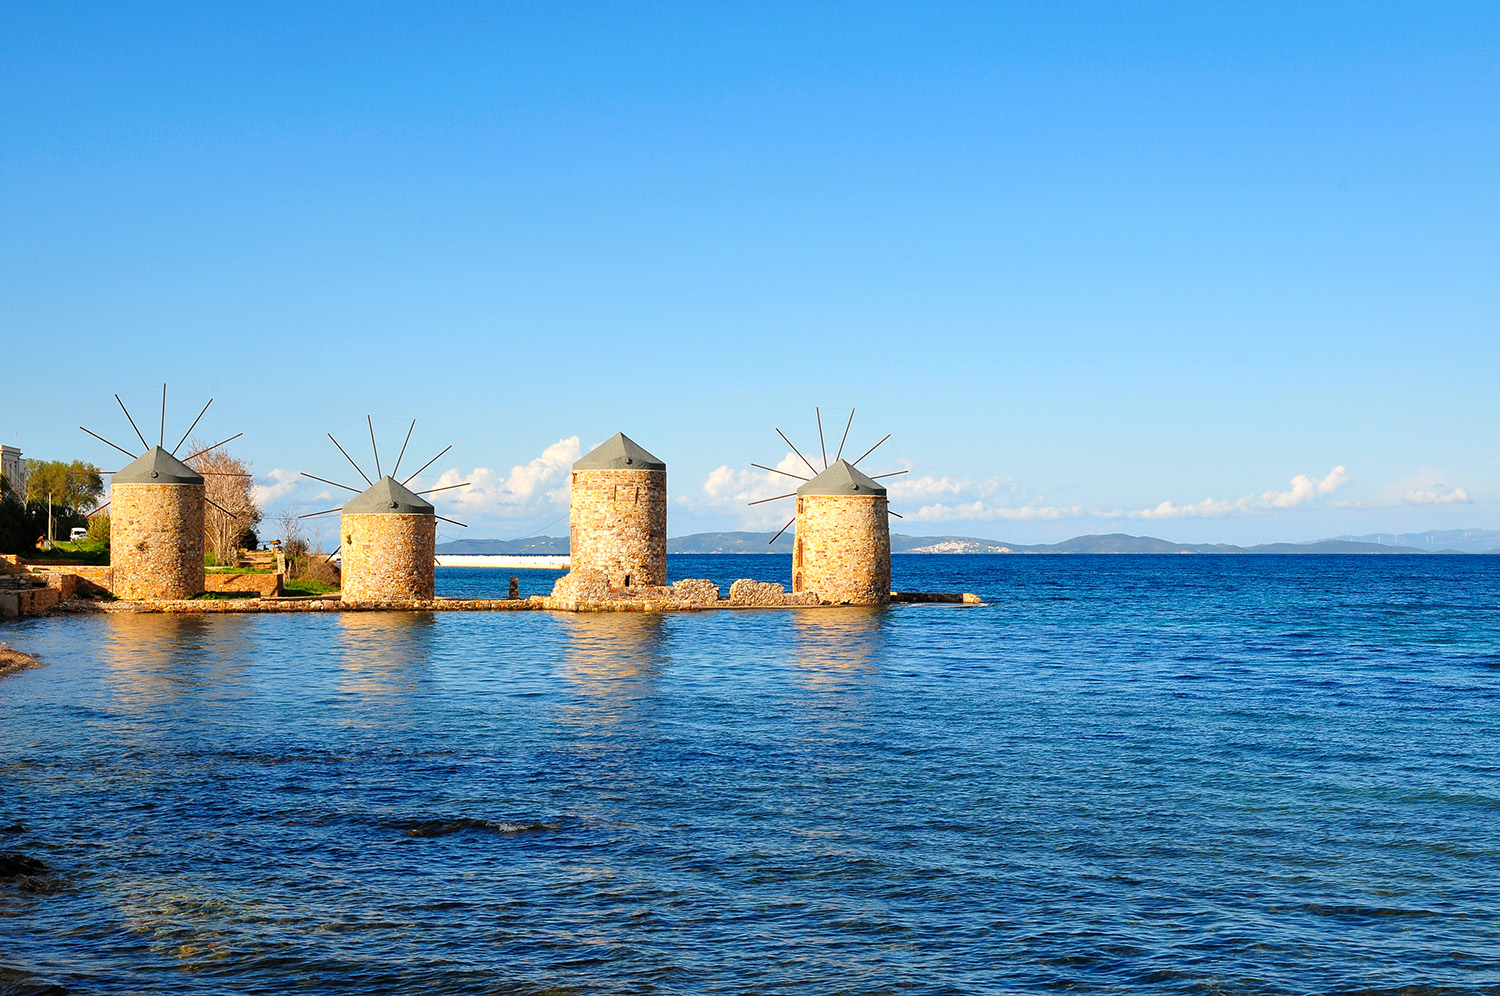 The Island of Chios photo  - Legacy